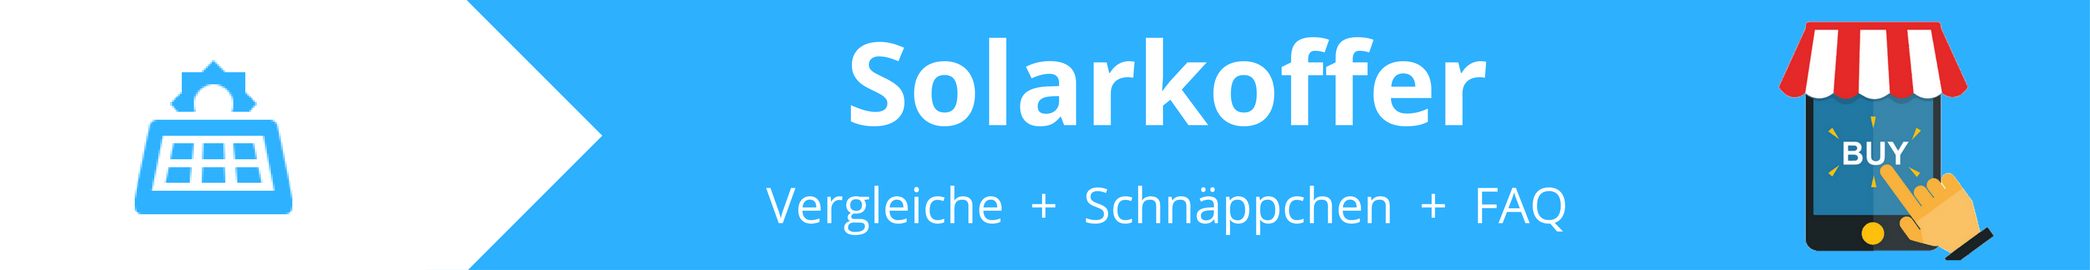 Solarkoffer